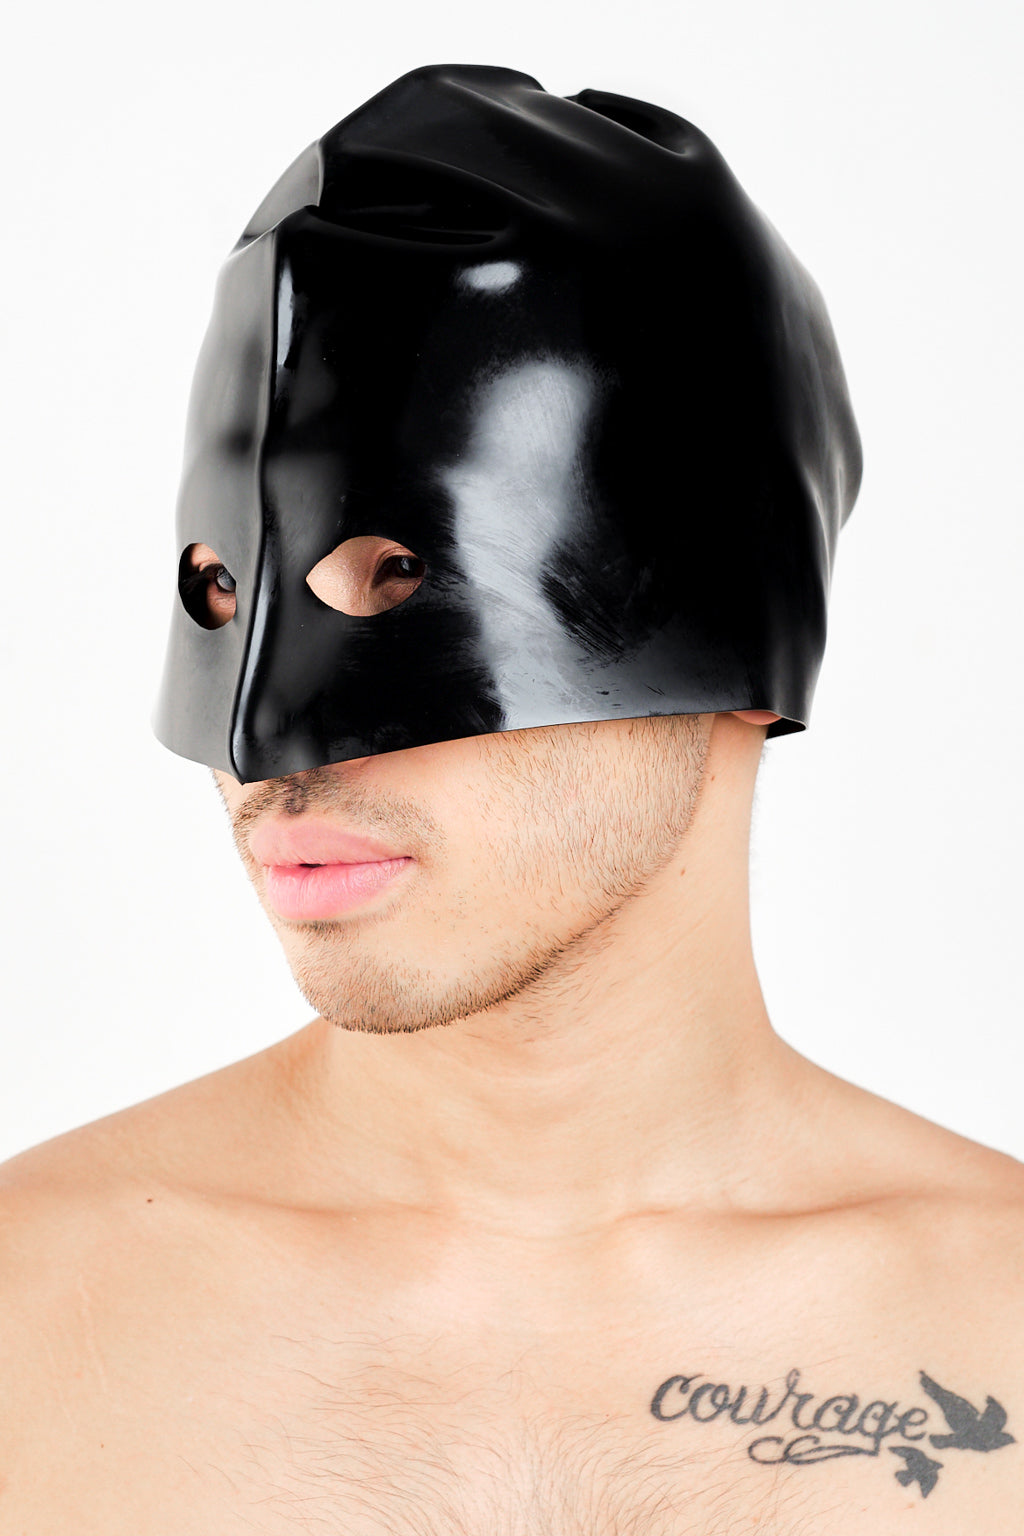 A man wearing a black latex executioners mask.